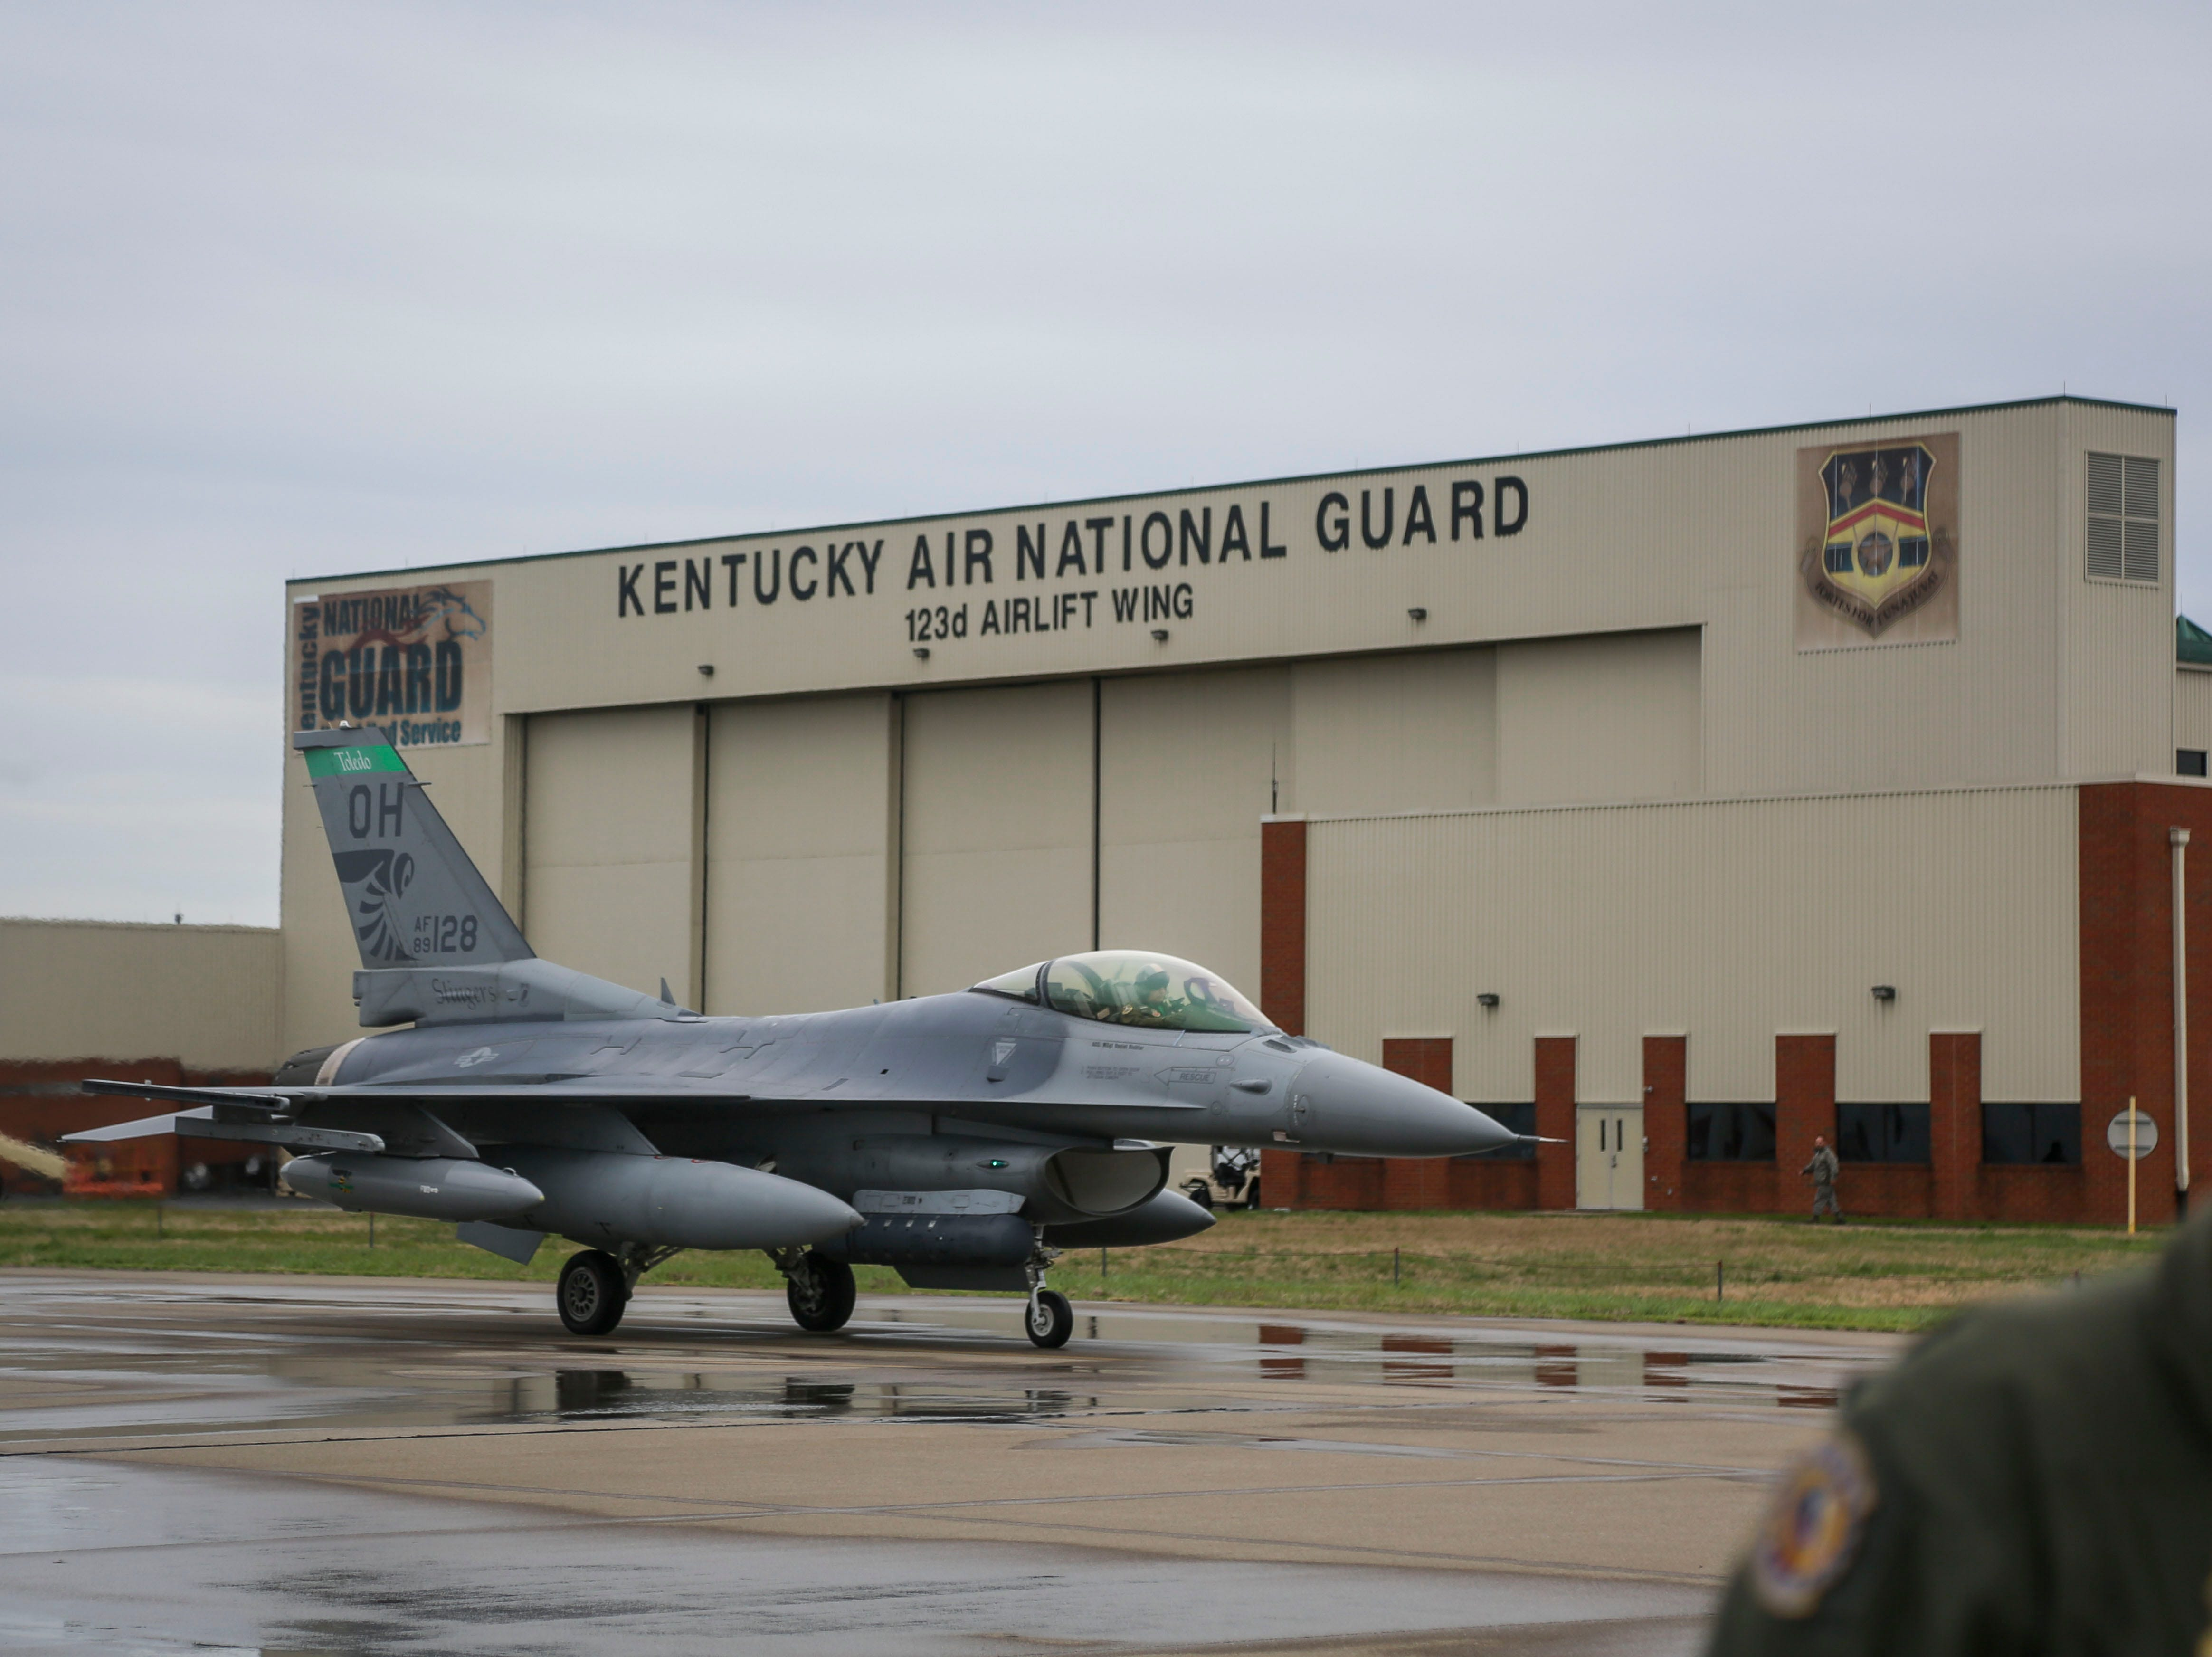 A F-16 Fighting Falcon, a single-engine supersonic multirole fighter aircraft, taxis on the runway of the Kentucky Air National Guard ahead of practice for Thunder Over Louisville in Louisville, Ky. on Friday, April 12, 2019.